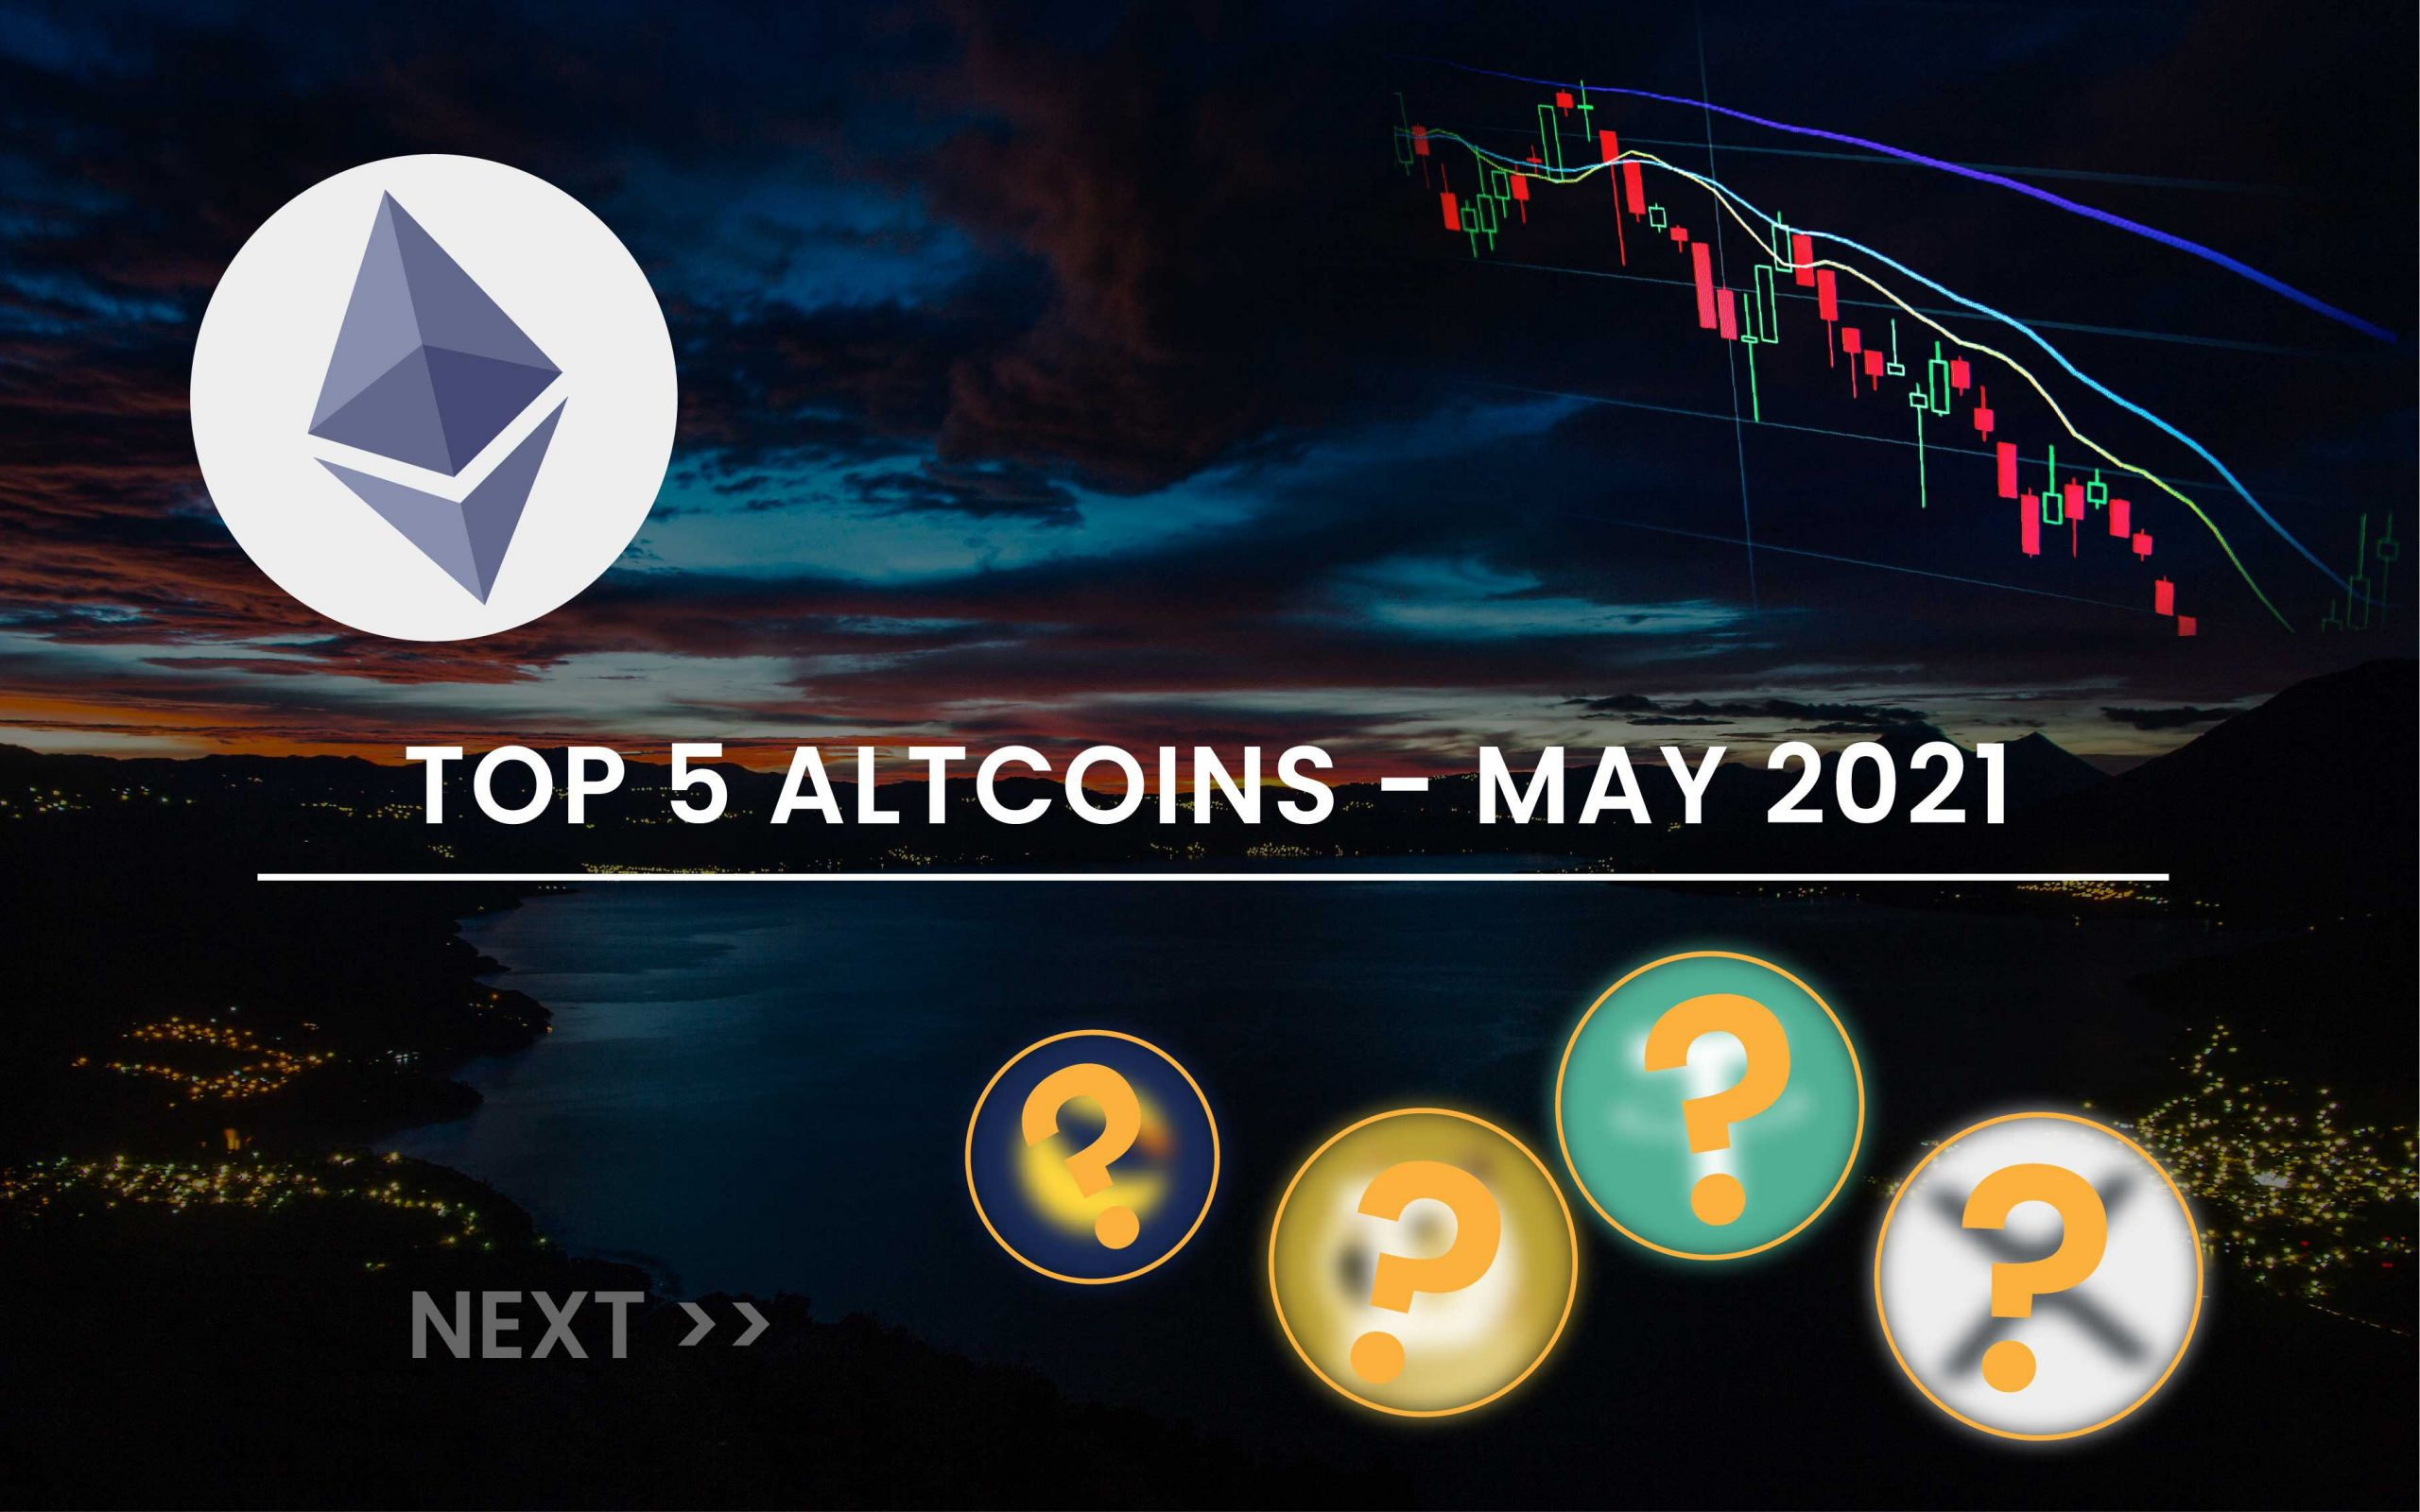 Top 5 altcoins to buy in May 2021